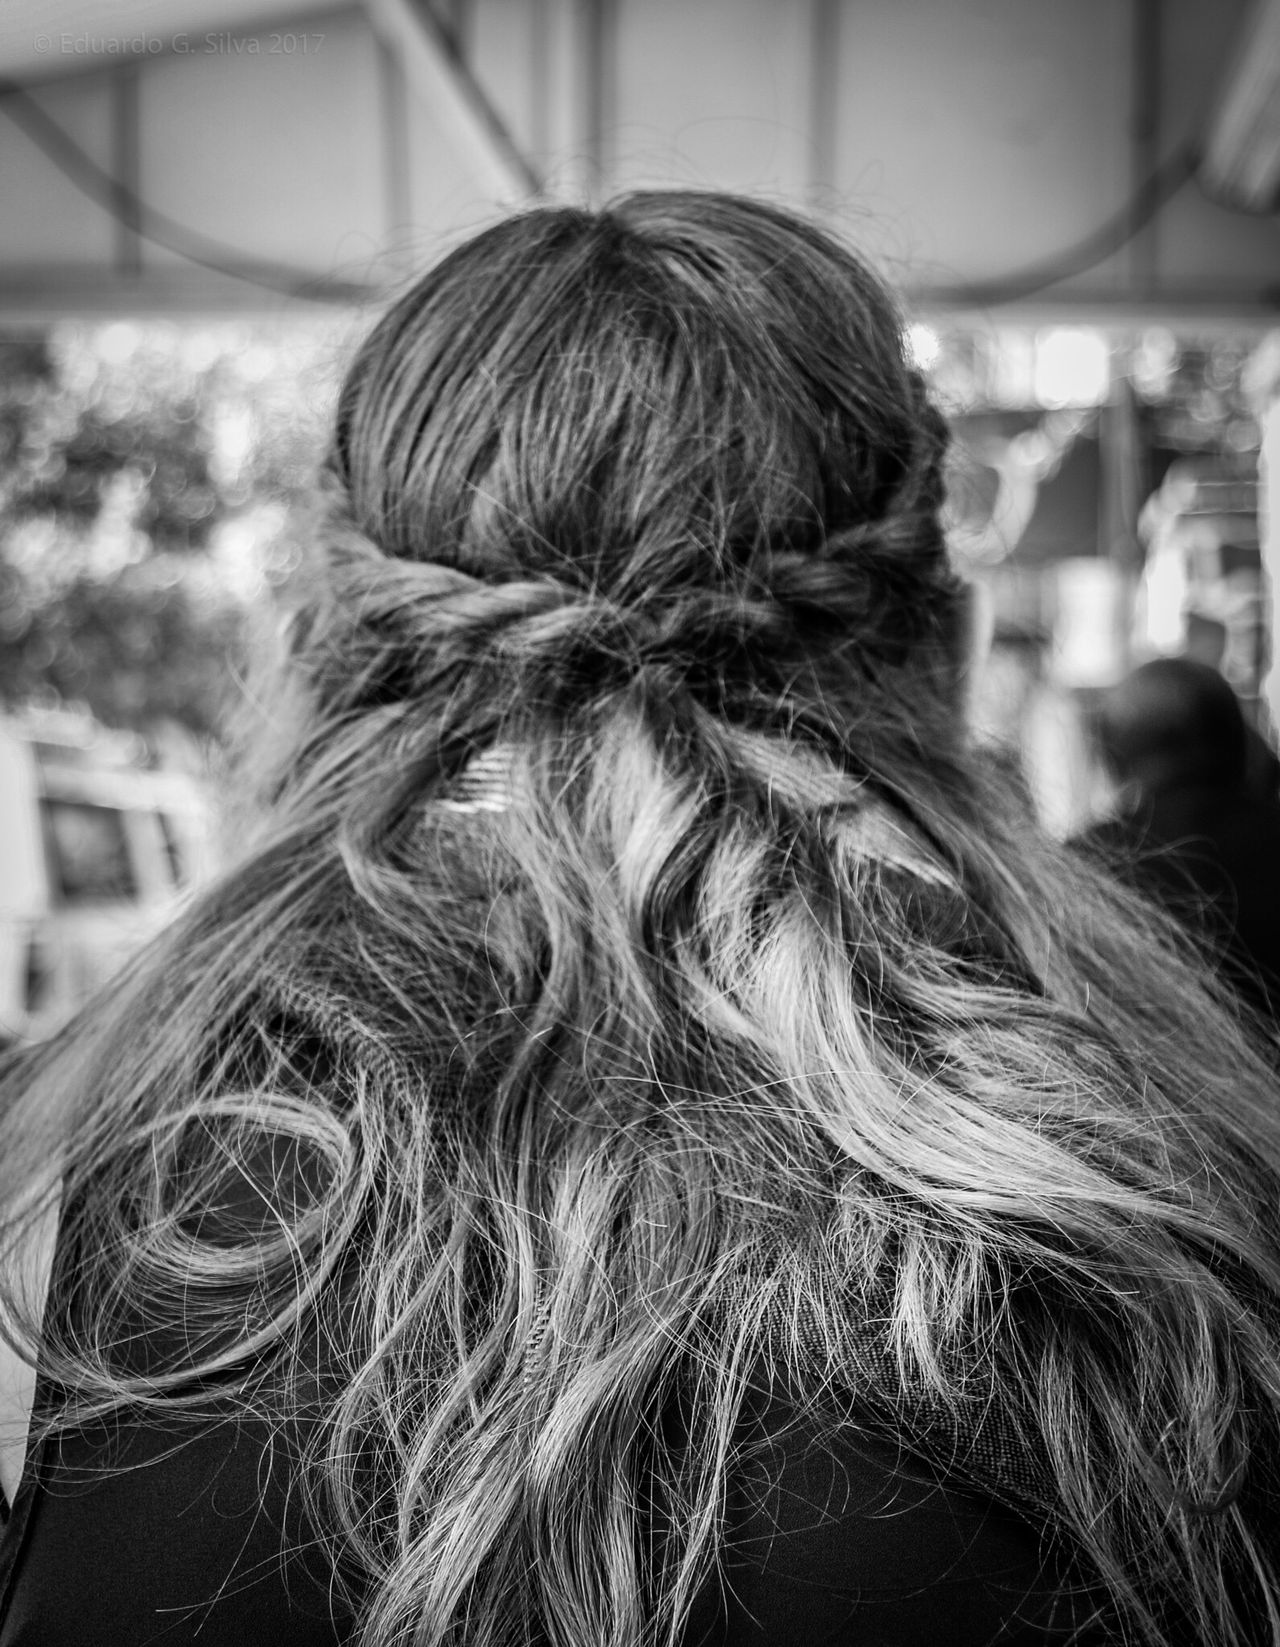 Woman Black & White Black And White Photography Black And White Collection  Streetphoto_bw Black And White Streetphotography Blackandwhite Photography Hair Mexico City Hairstyle Hair Style